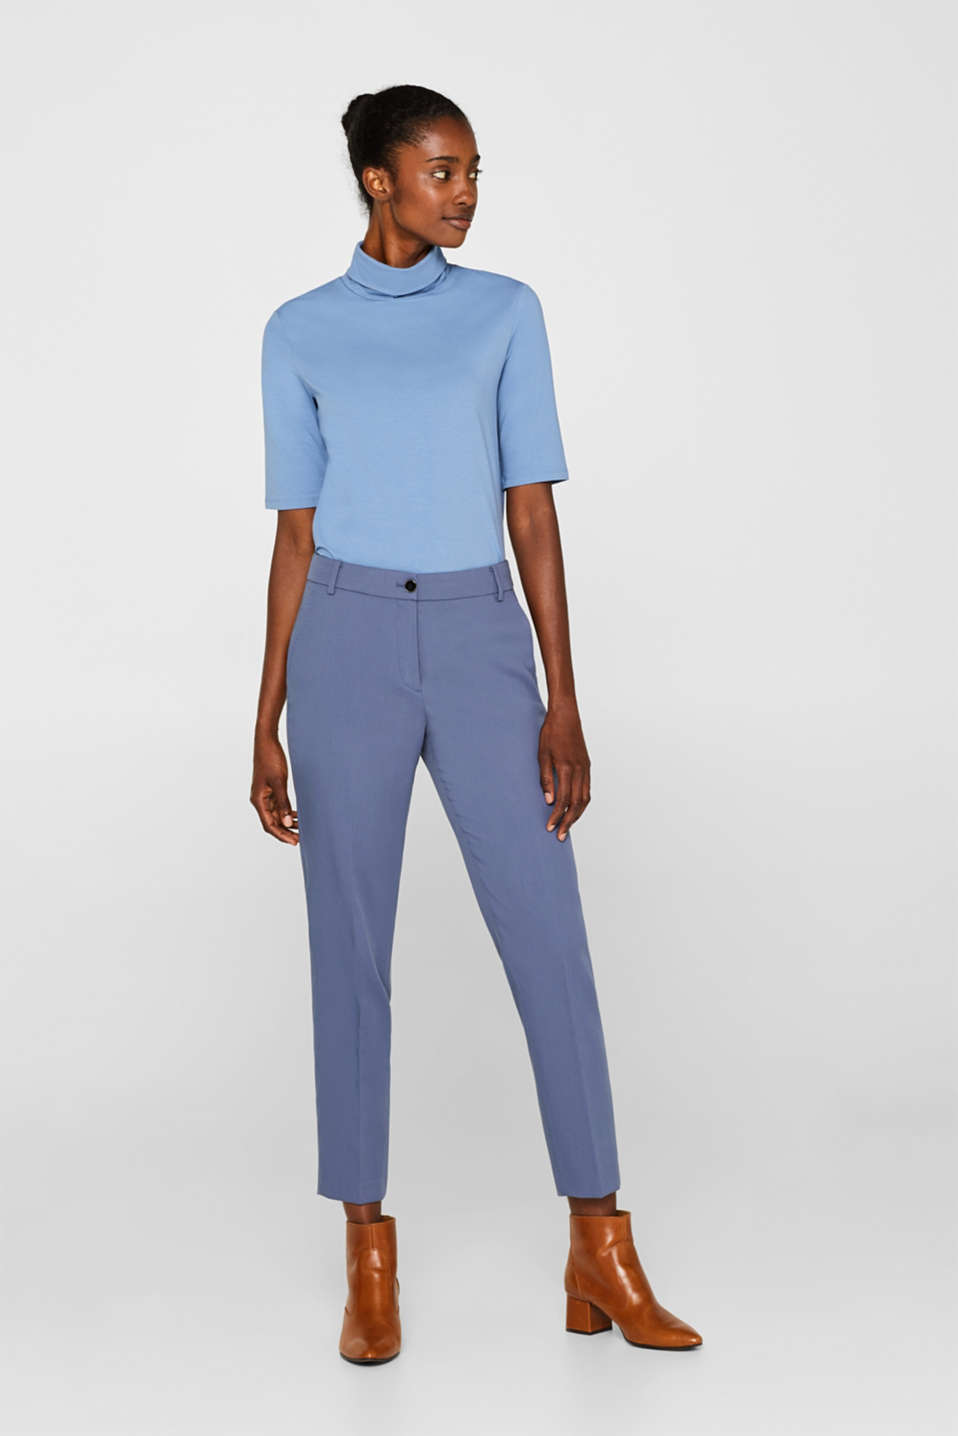 STITCHING mix + match stretch trousers with decorative stitching, GREY BLUE 2, detail image number 0